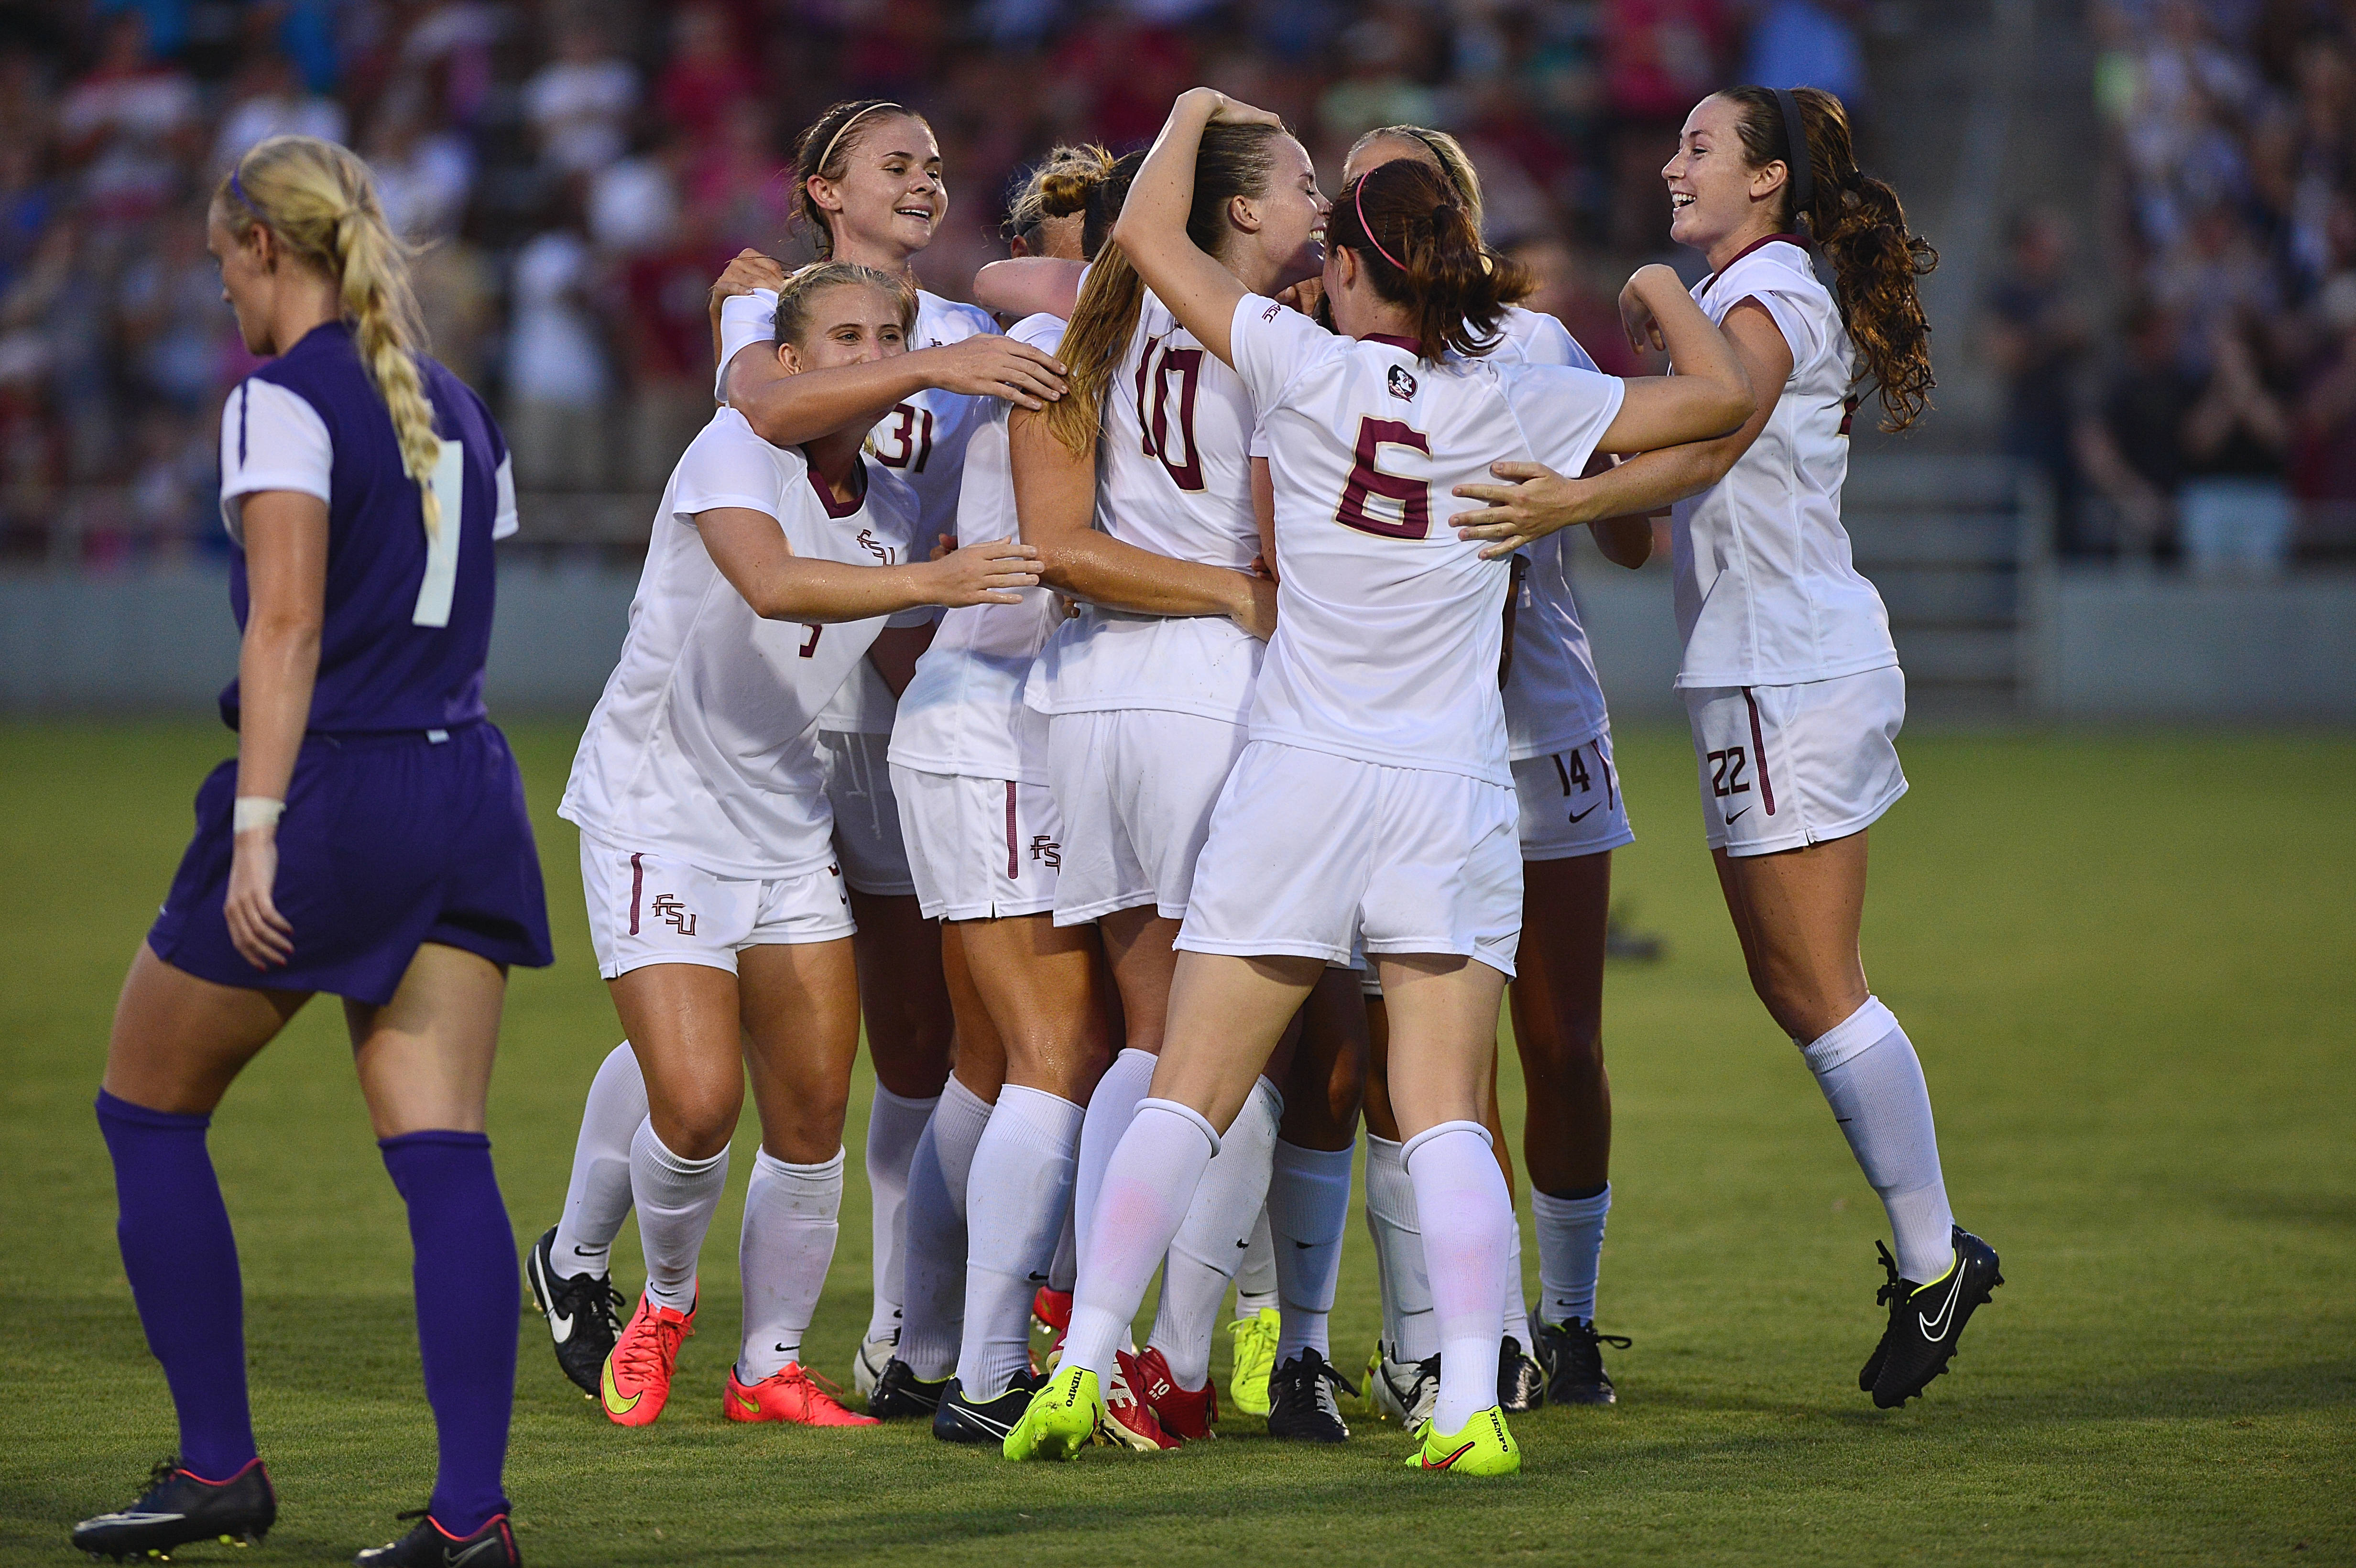 Florida State vs Portland Photo Gallery